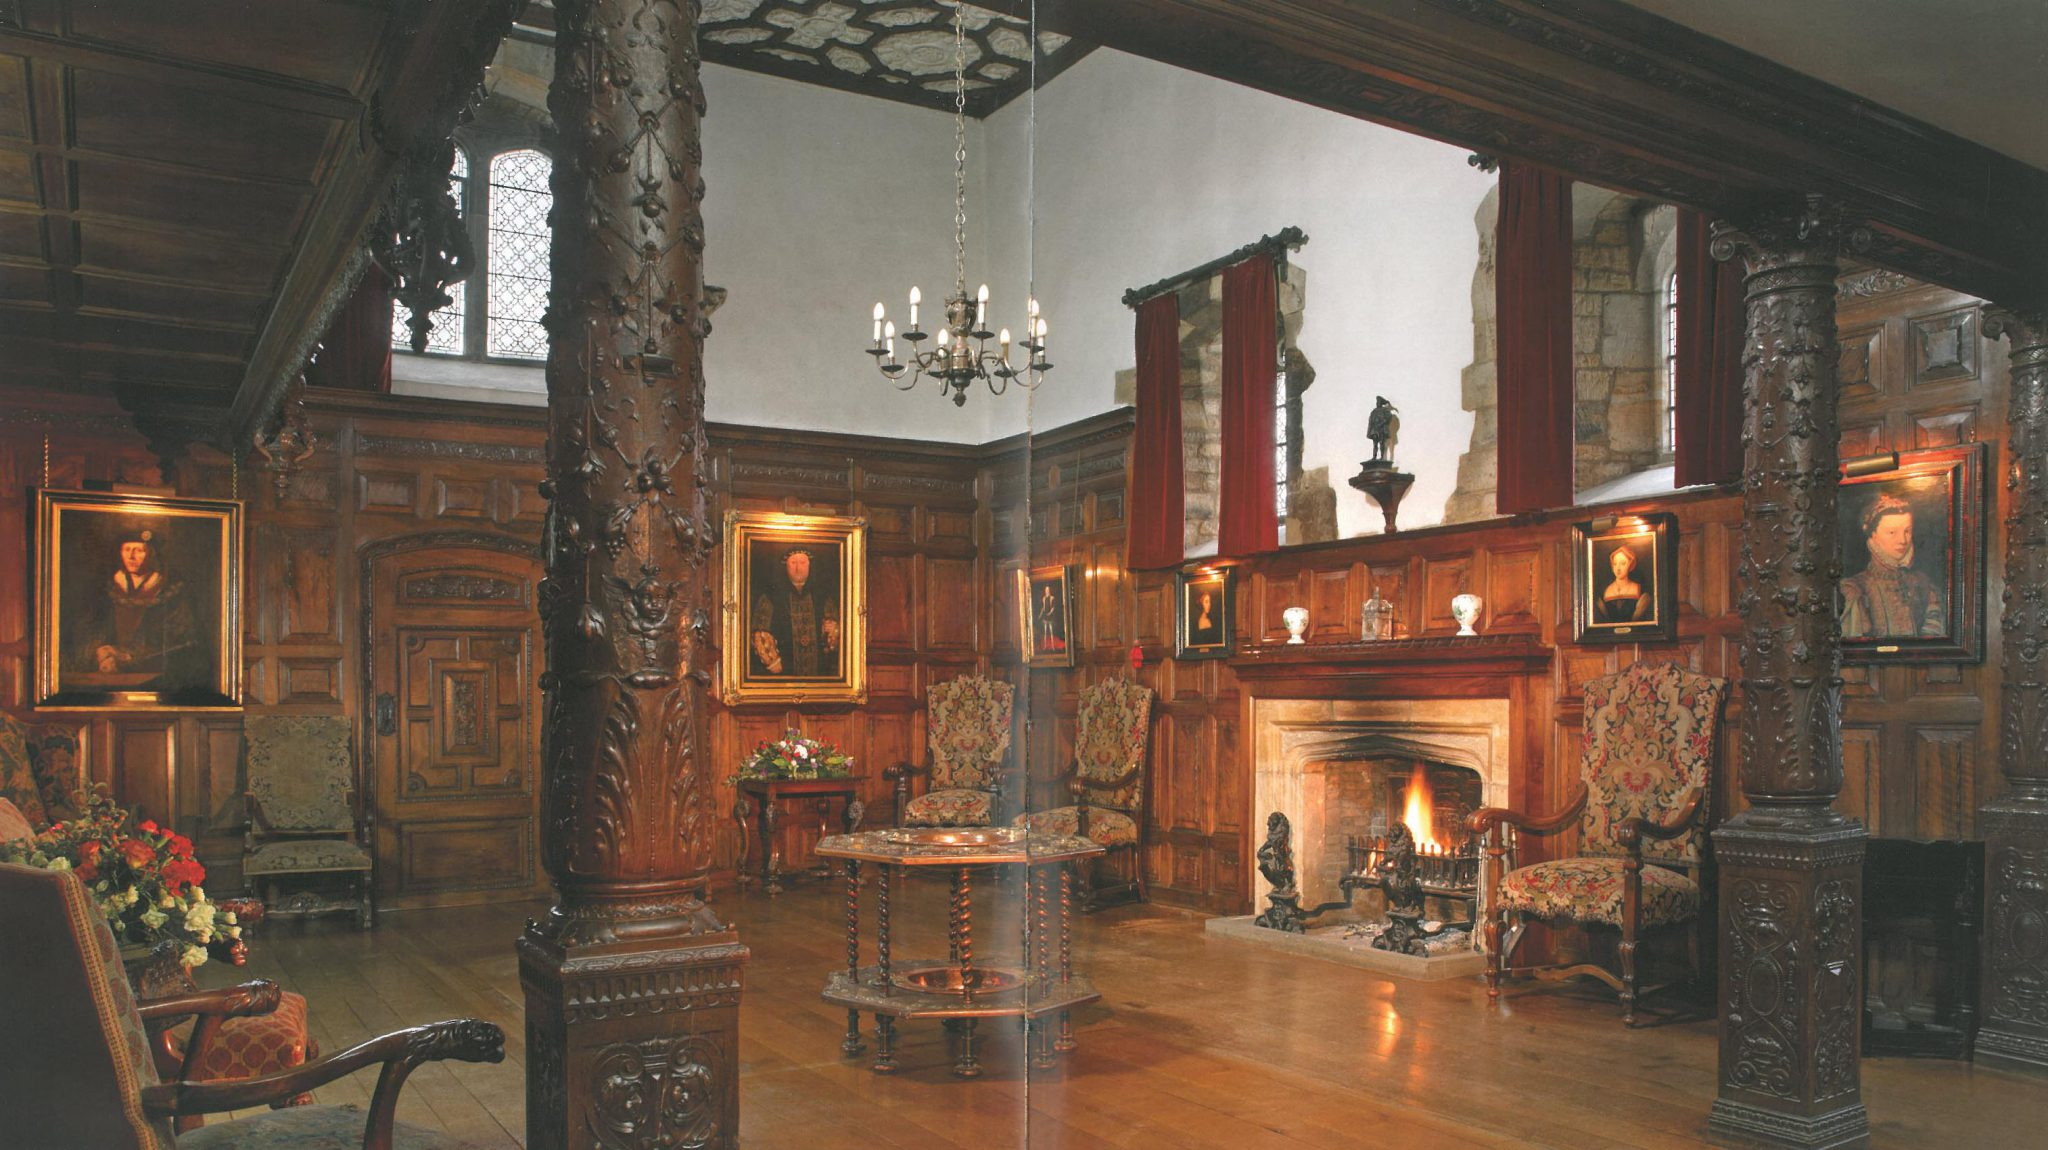 The Inner Hall. The splendor of the reception room that greets visitors to Hever today is a complete contrast to its original use in Tudor times, when this was the Great Kitchen, complete with a large fireplace for cooking and a well for water. Between 1903 and 1908, William Waldorf Astor redid the space with Italian walnut paneling and columns. Image courtesy of Hever Castle.